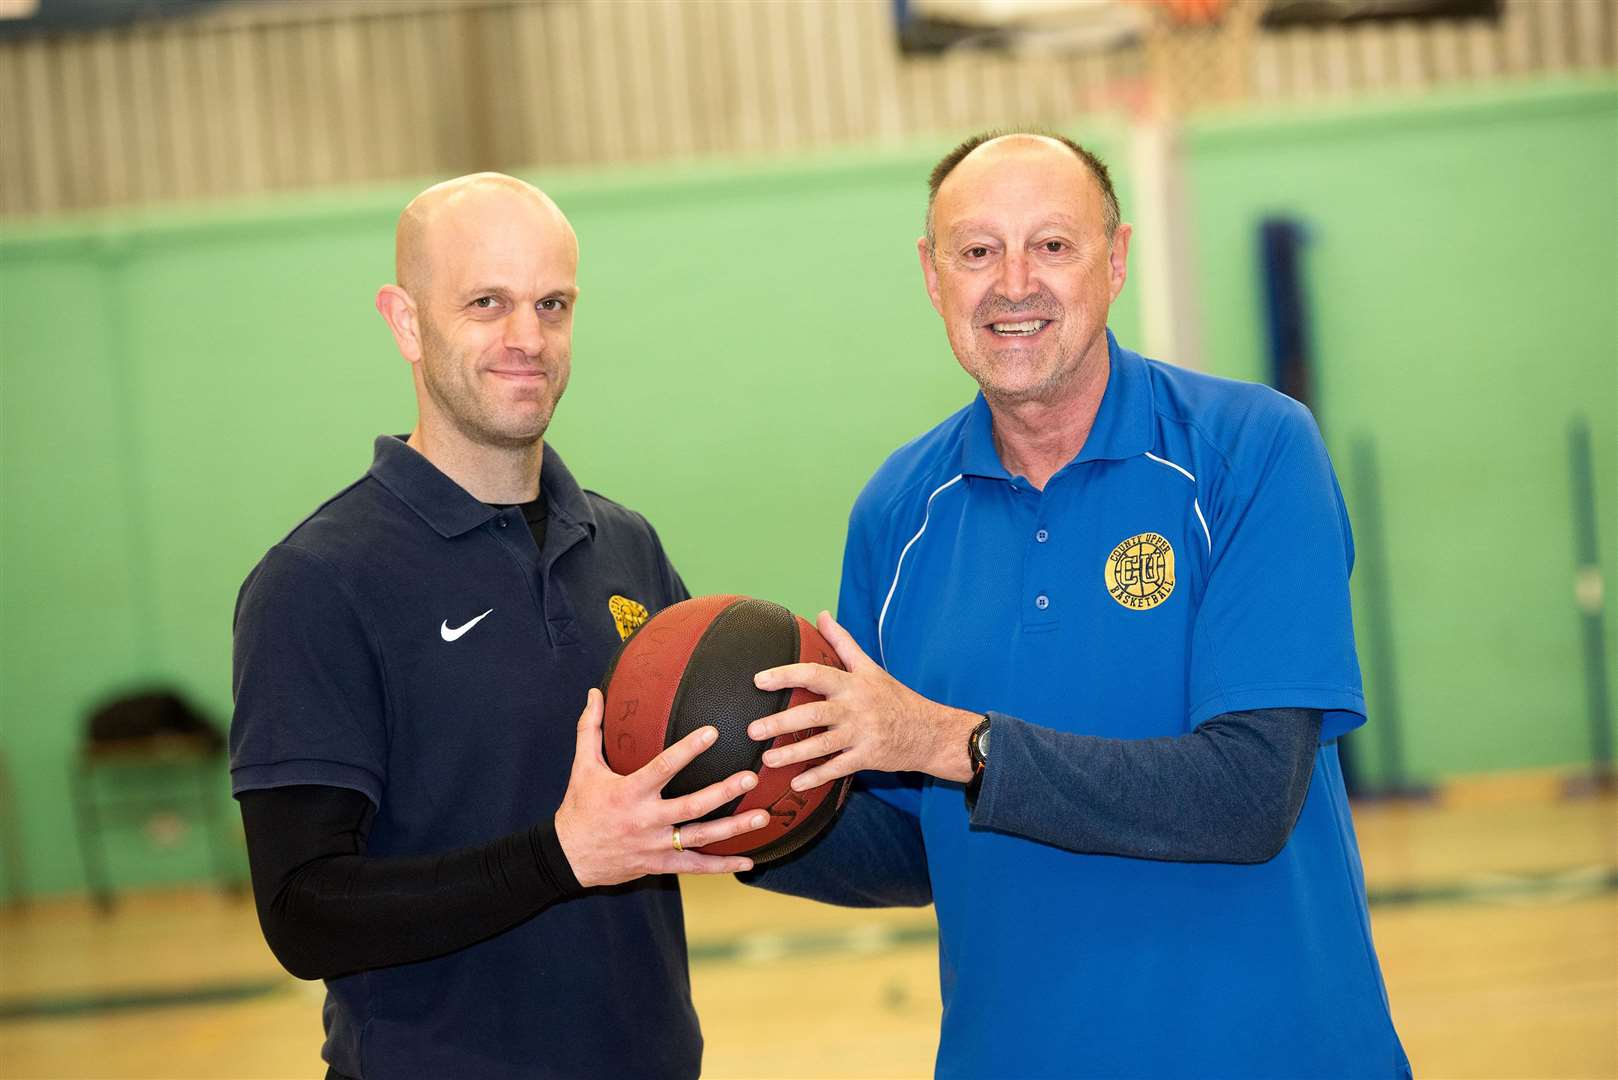 Bury St Edmunds.County Upper Basketball Academy hire ex-professional head coach: Coach Navarro: ANGEL NAVARRO HERNÁNDEZ.Has coached in the Champions League equivalent of basketball in Spain..Coach Darren Johnson and Angel Navarro Picture Mark Westley. (35249866)